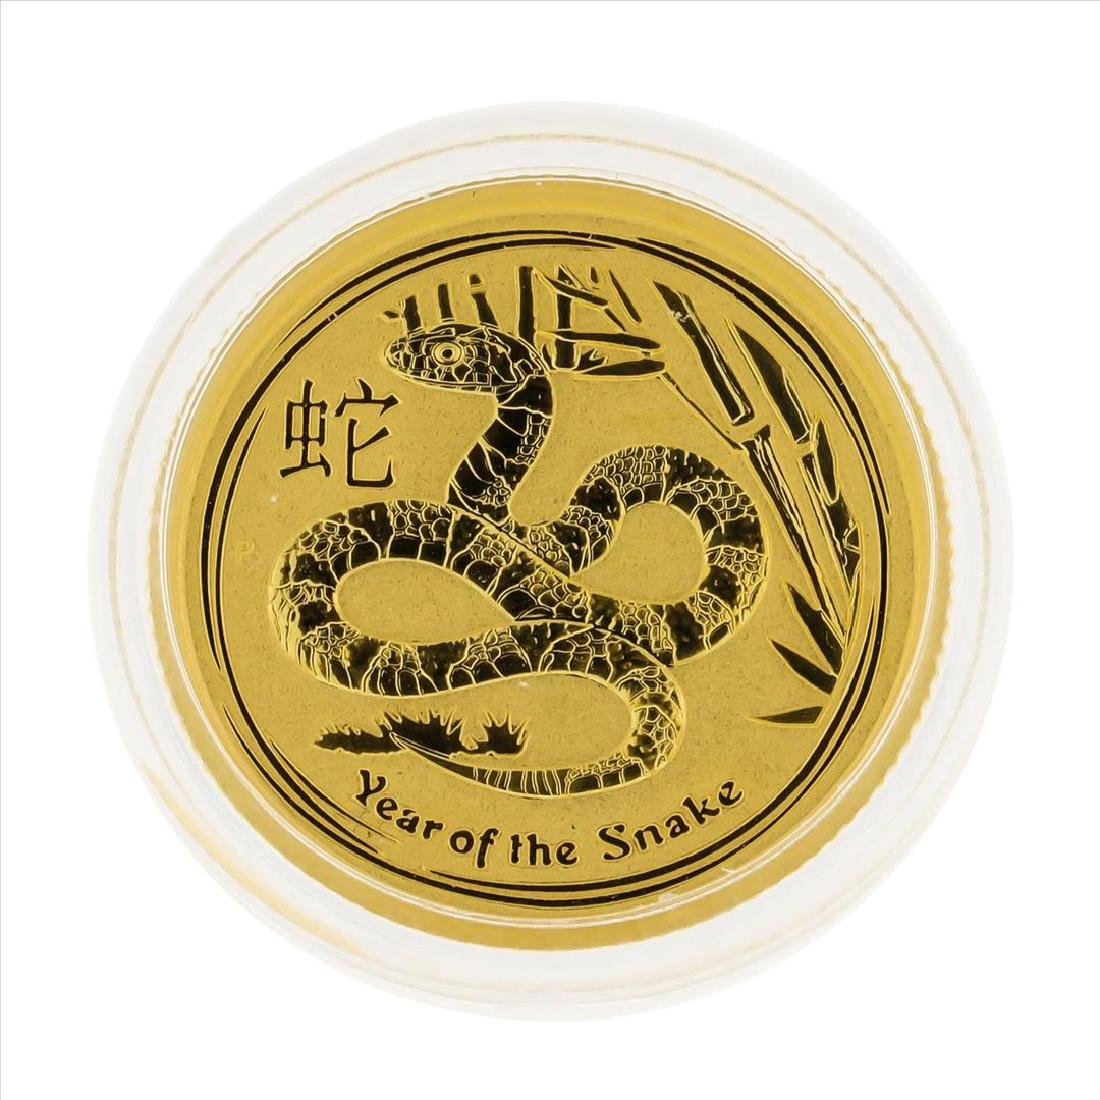 2013 $15 Australia 1/10 oz Lunar Year of the Snake Gold